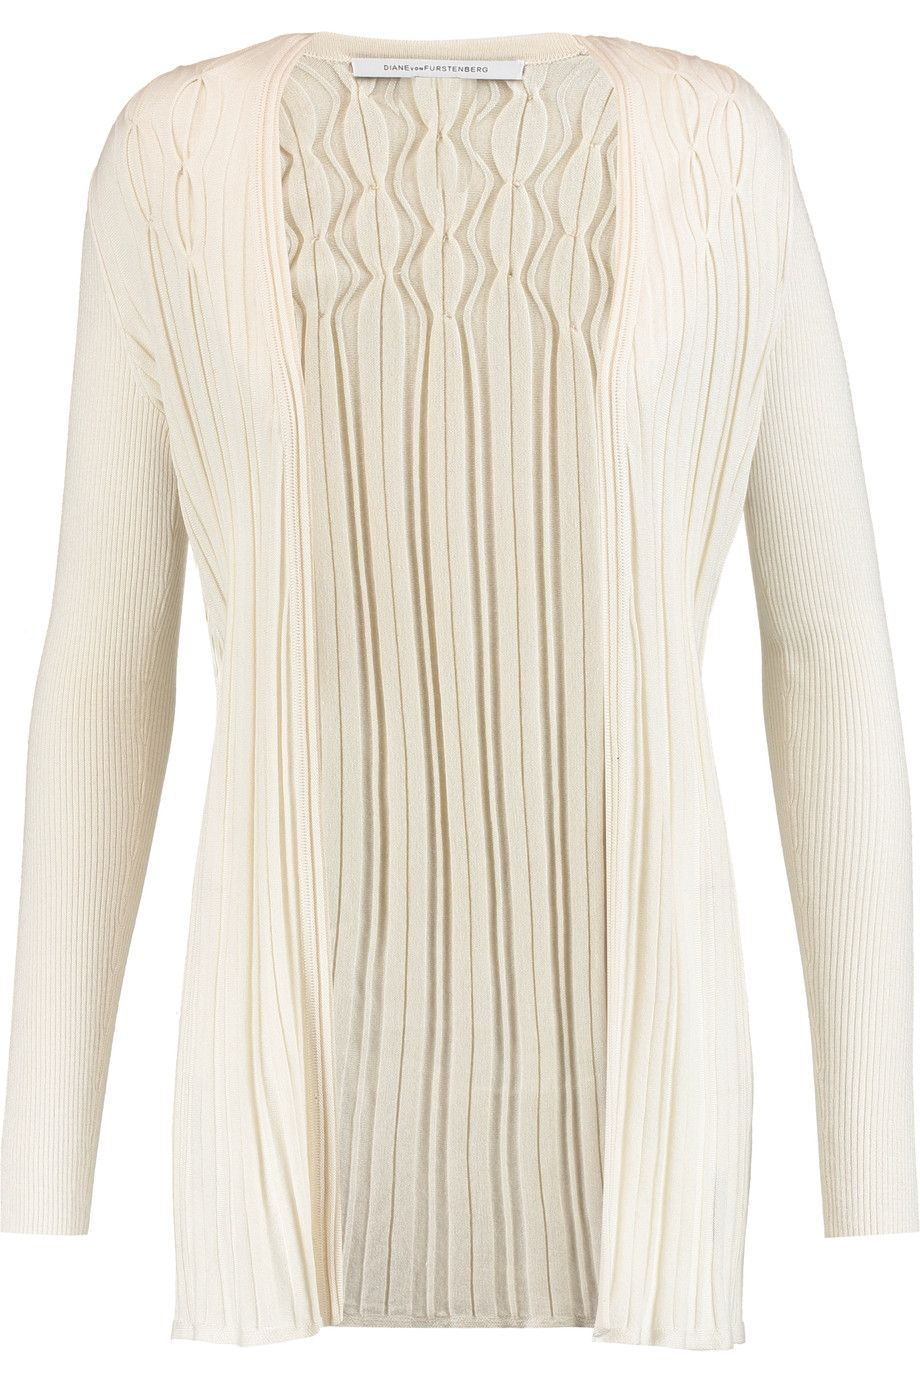 DIANE VON FURSTENBERG Bari ribbed silk and cashmere cardigan. #dianevonfurstenberg #cloth #cardigan